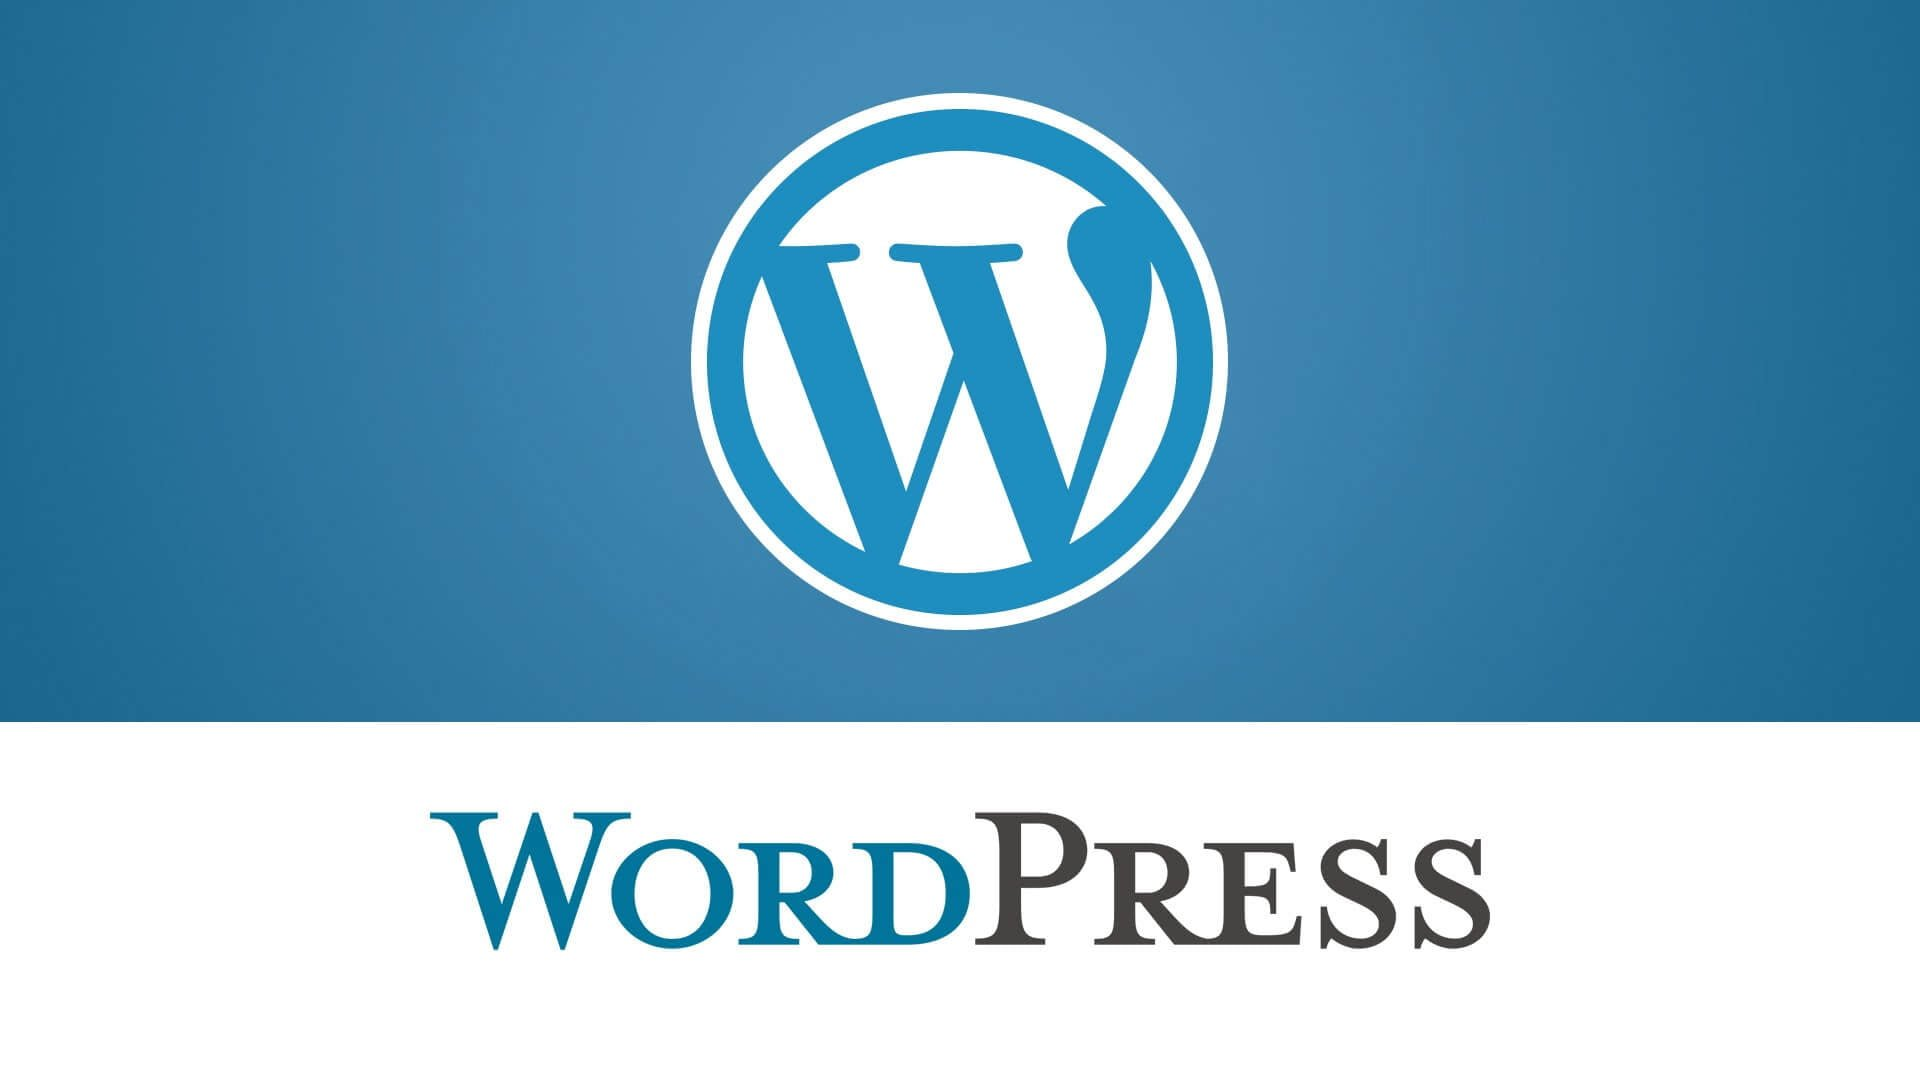 Wordpress kullanım limiti WordPress ''OUT OF MEMORY'' Hatası Çözüm Yöntemi WordPress ''OUT OF MEMORY'' Hatası Çözüm Yöntemi wordpress kaynak kullanimi